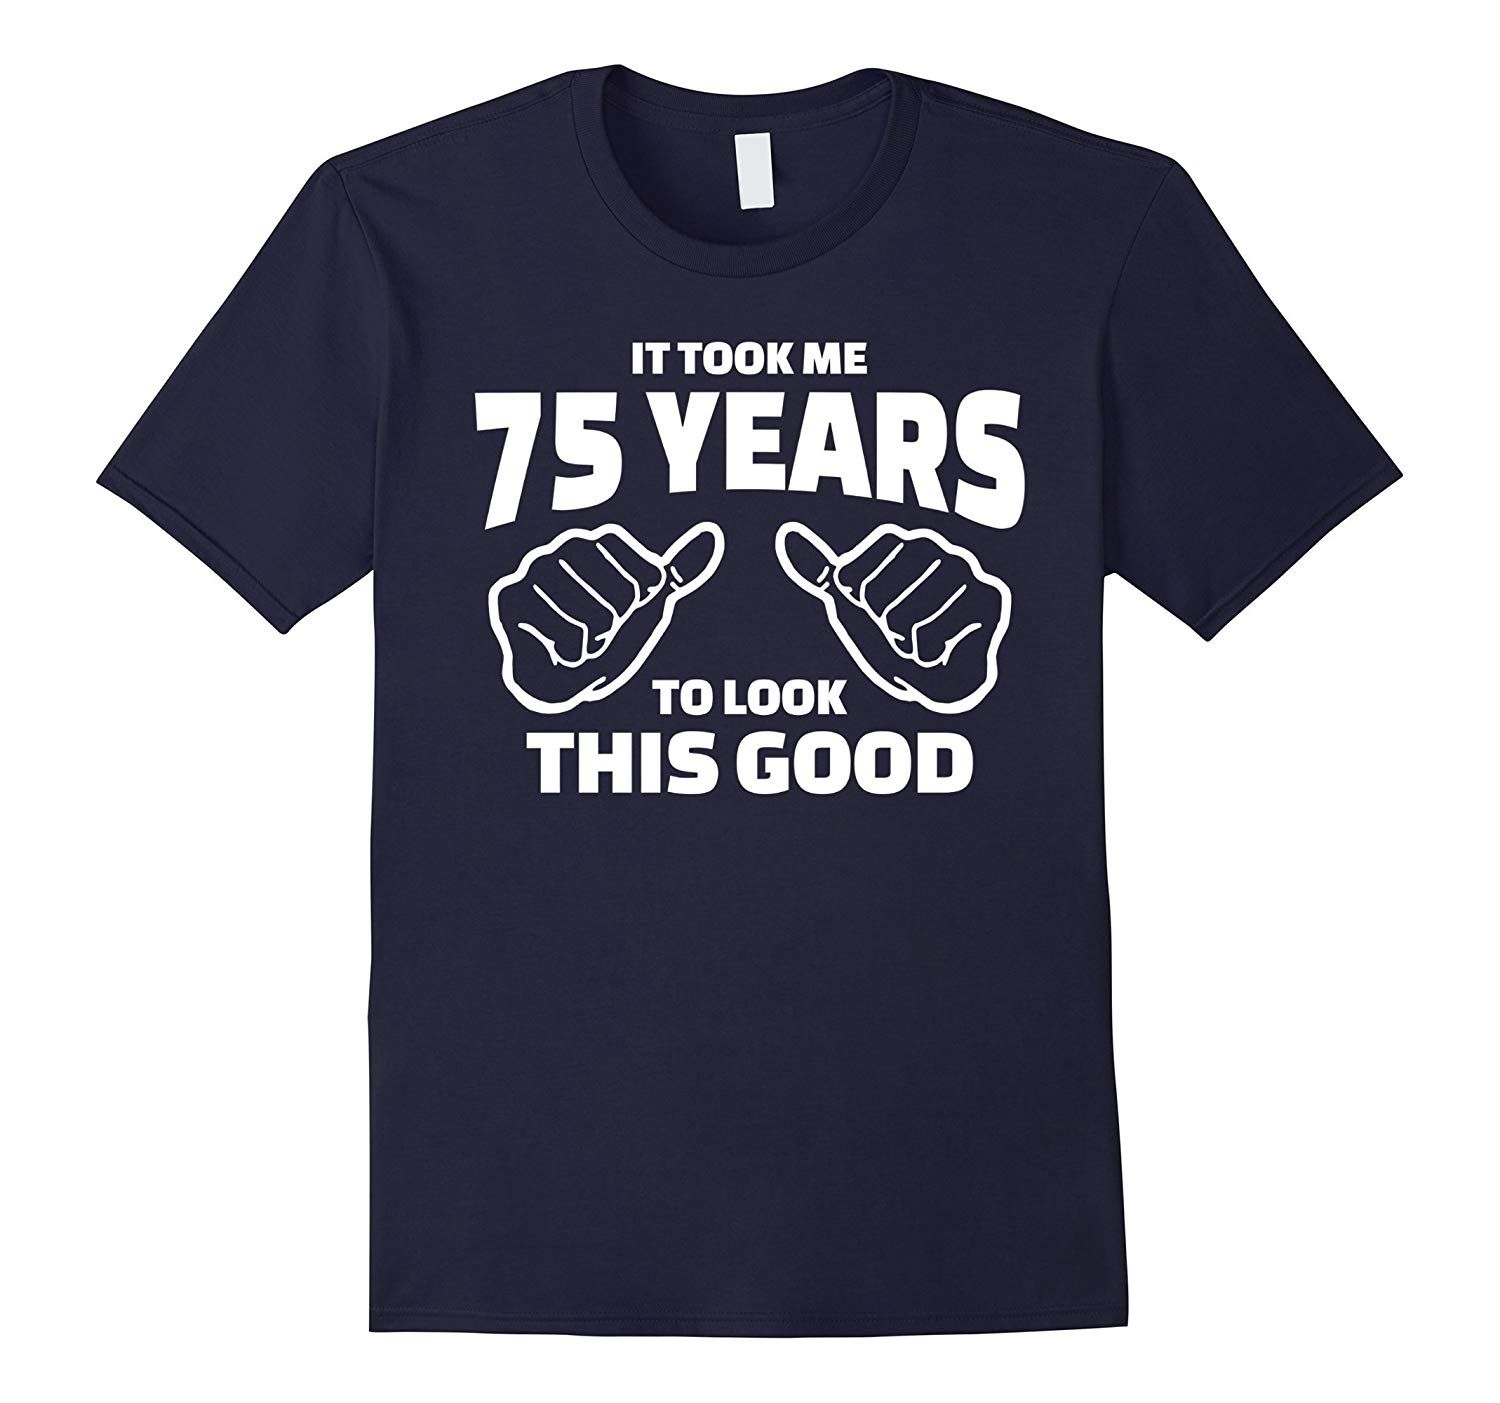 Gifts For 60 Year Old Man Amazon 2021